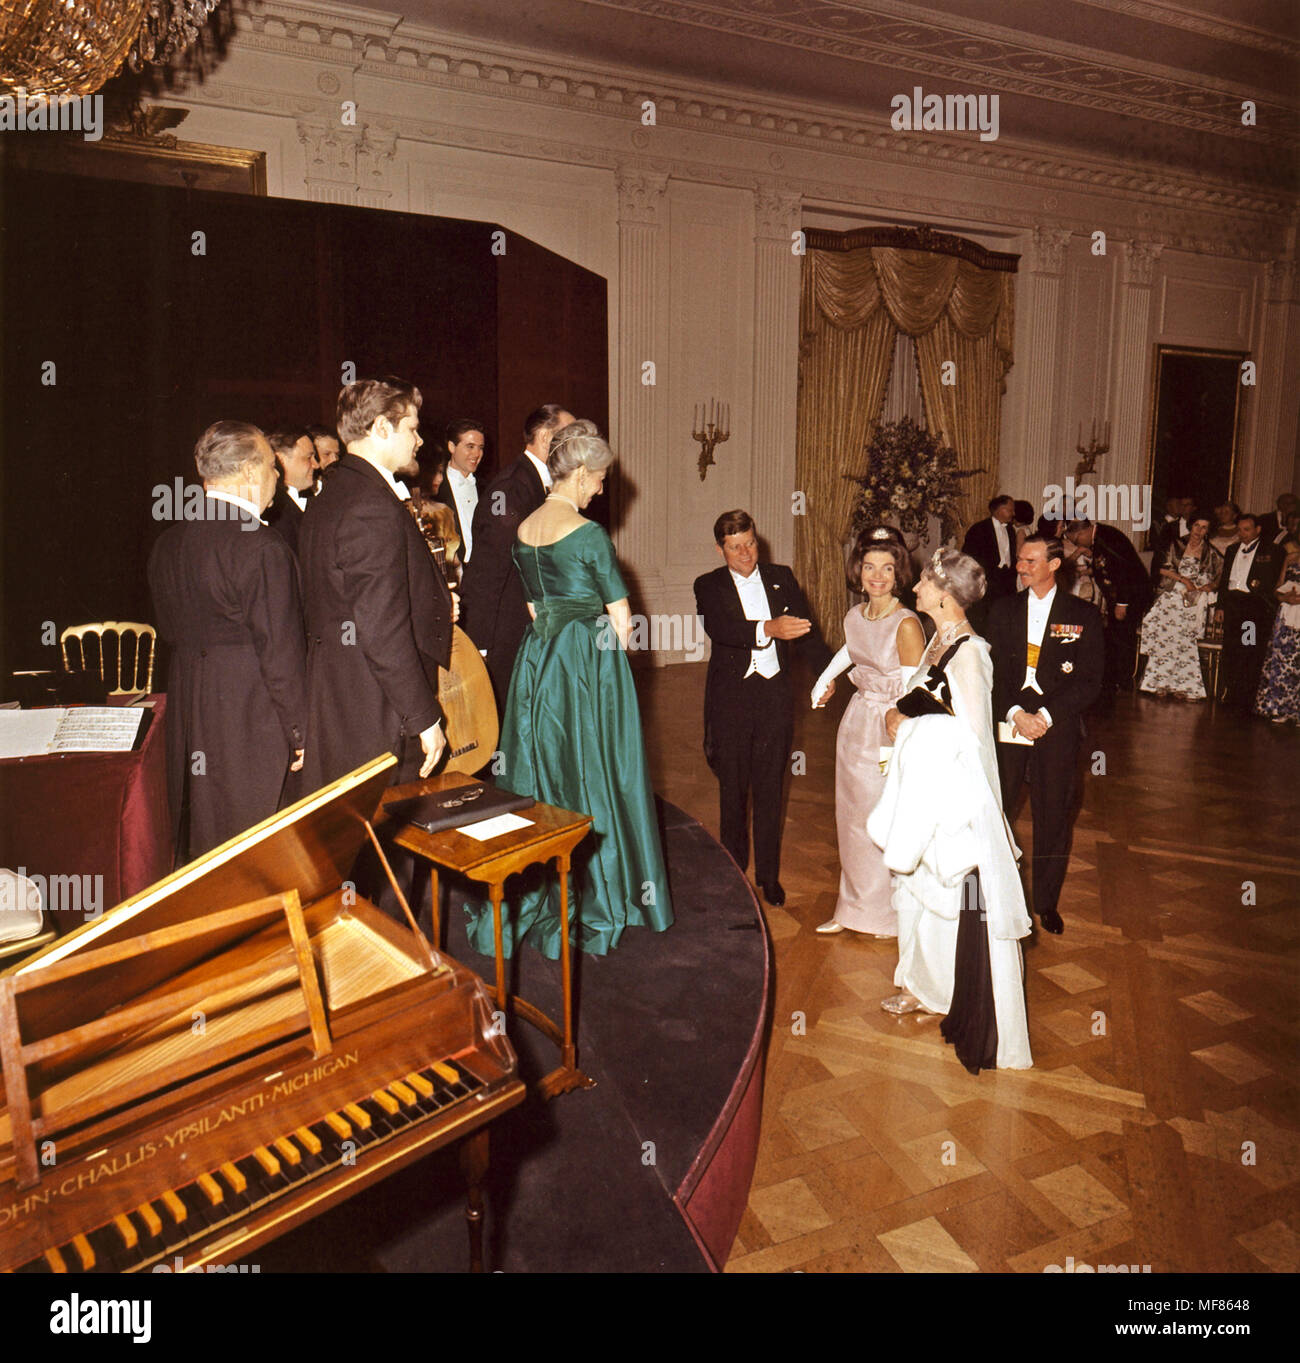 ST-C125-8-63   30 April 1963 President Kennedy, Jackie Kennedy, Grand Duchess Charlotte of Luxembourg, and Grand Duke of Luxembourg Prince Jean approach the stage at the State Dinner in honor of the Grand Duchess, 30 April 1963.  Basil Rathbone gave Elizabethan readings and the Consort Players of New York played music in the East Room.  Photograph by Cecil Stoughton in the John F. Kennedy Presidential Library and Museum, Boston. - Stock Image